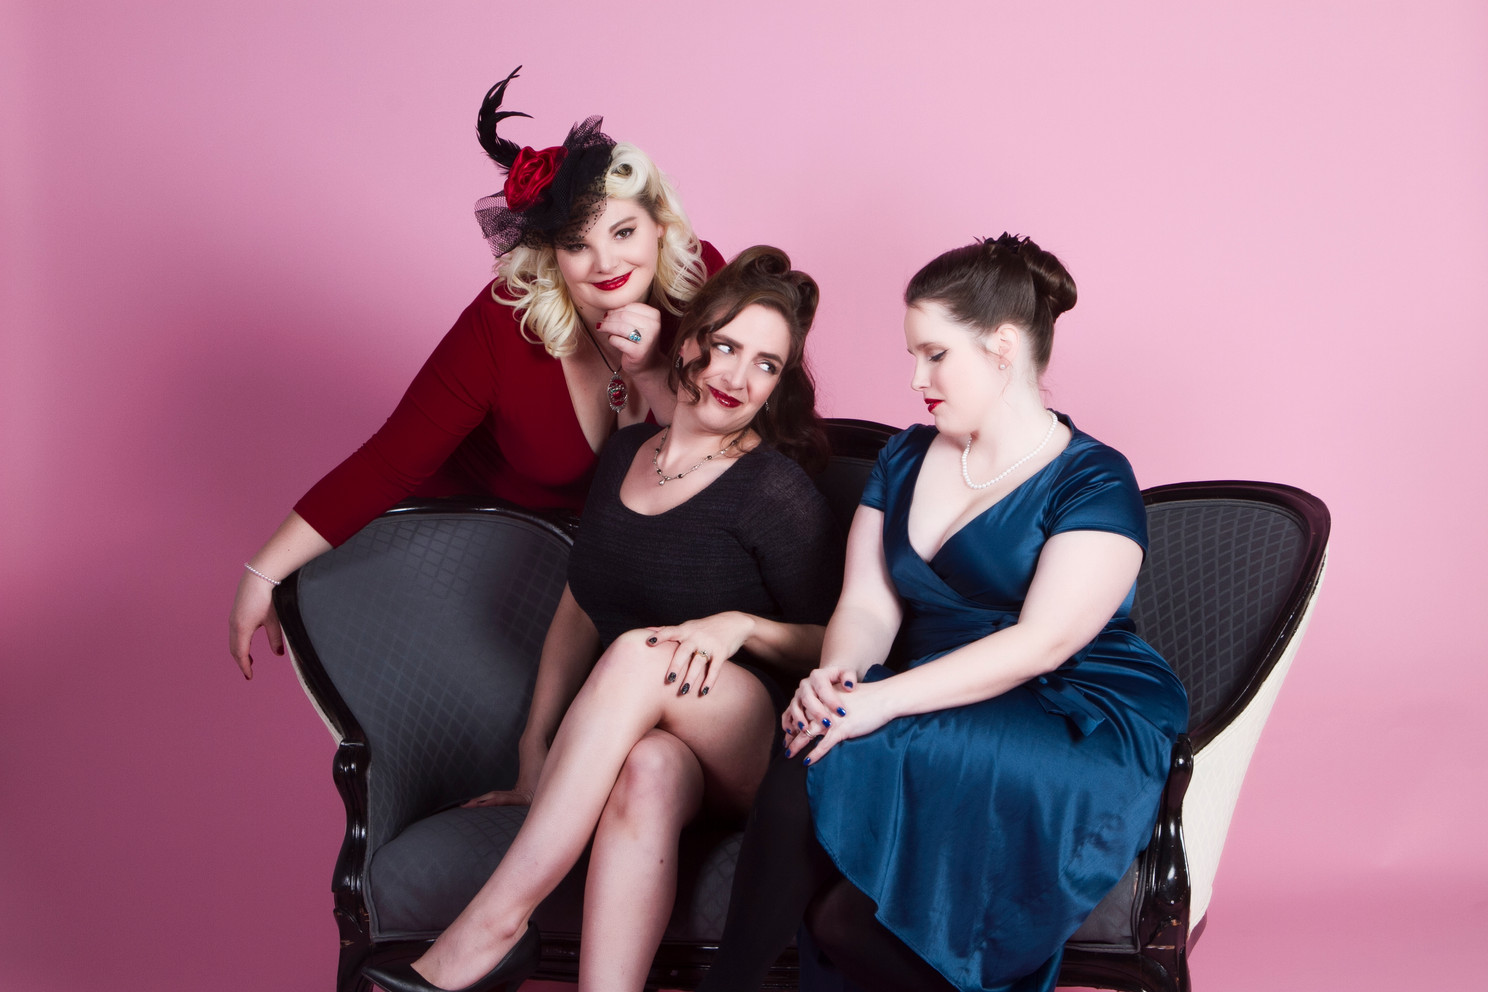 Bachelorette Parties - By Becky Lynn Photography